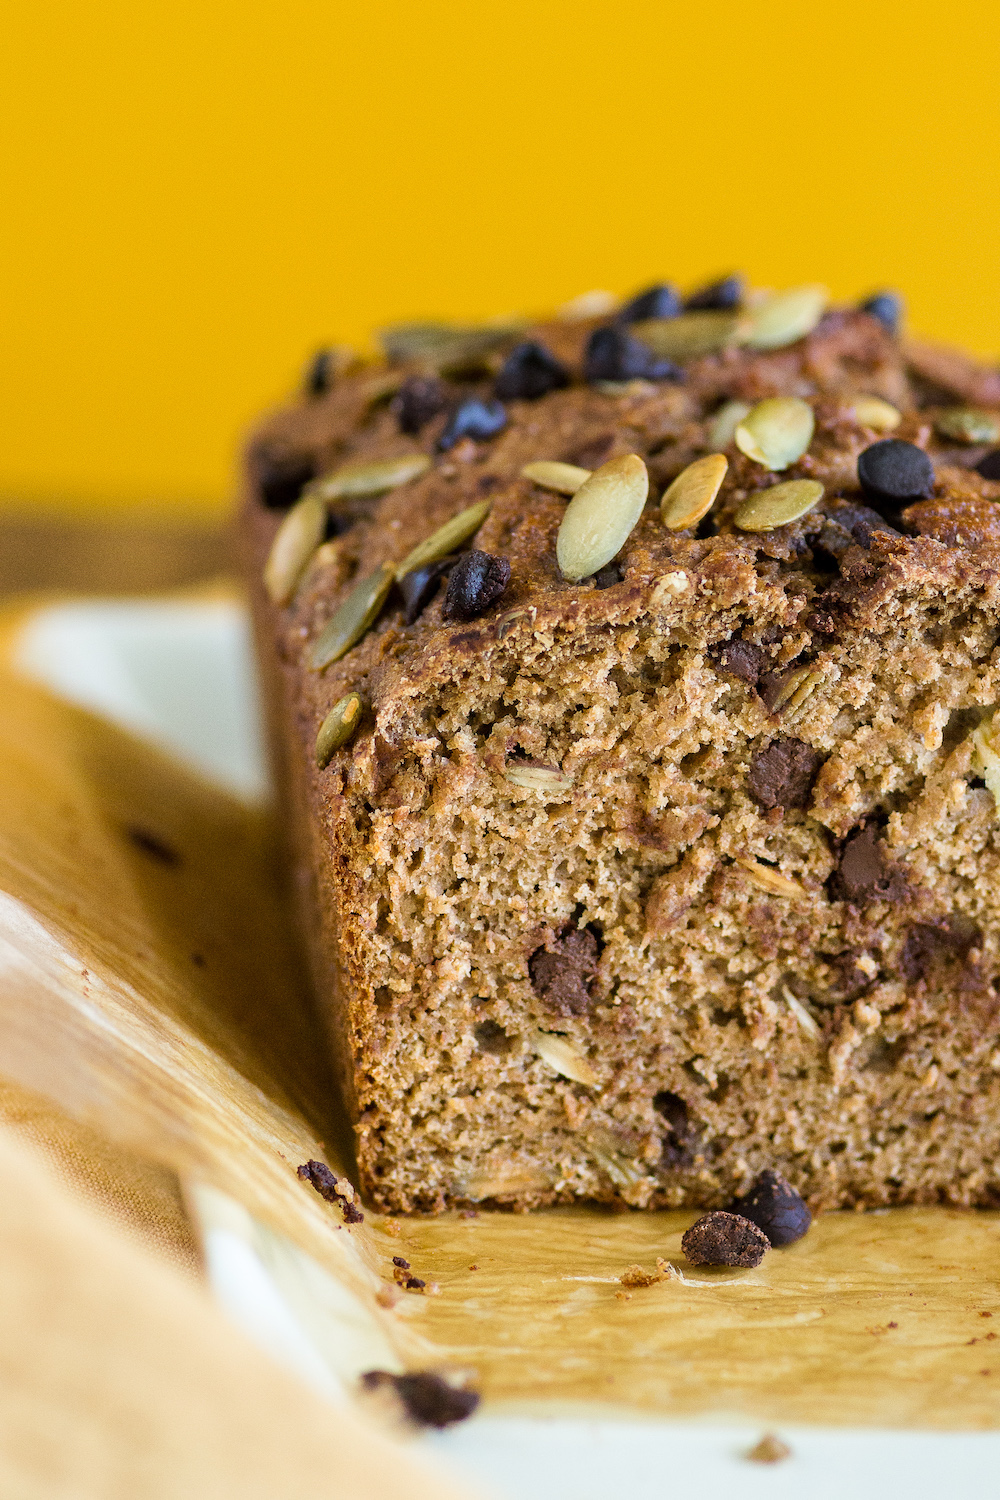 Oatmeal Stout Chocolate Chip Banana Bread. Oil-free.